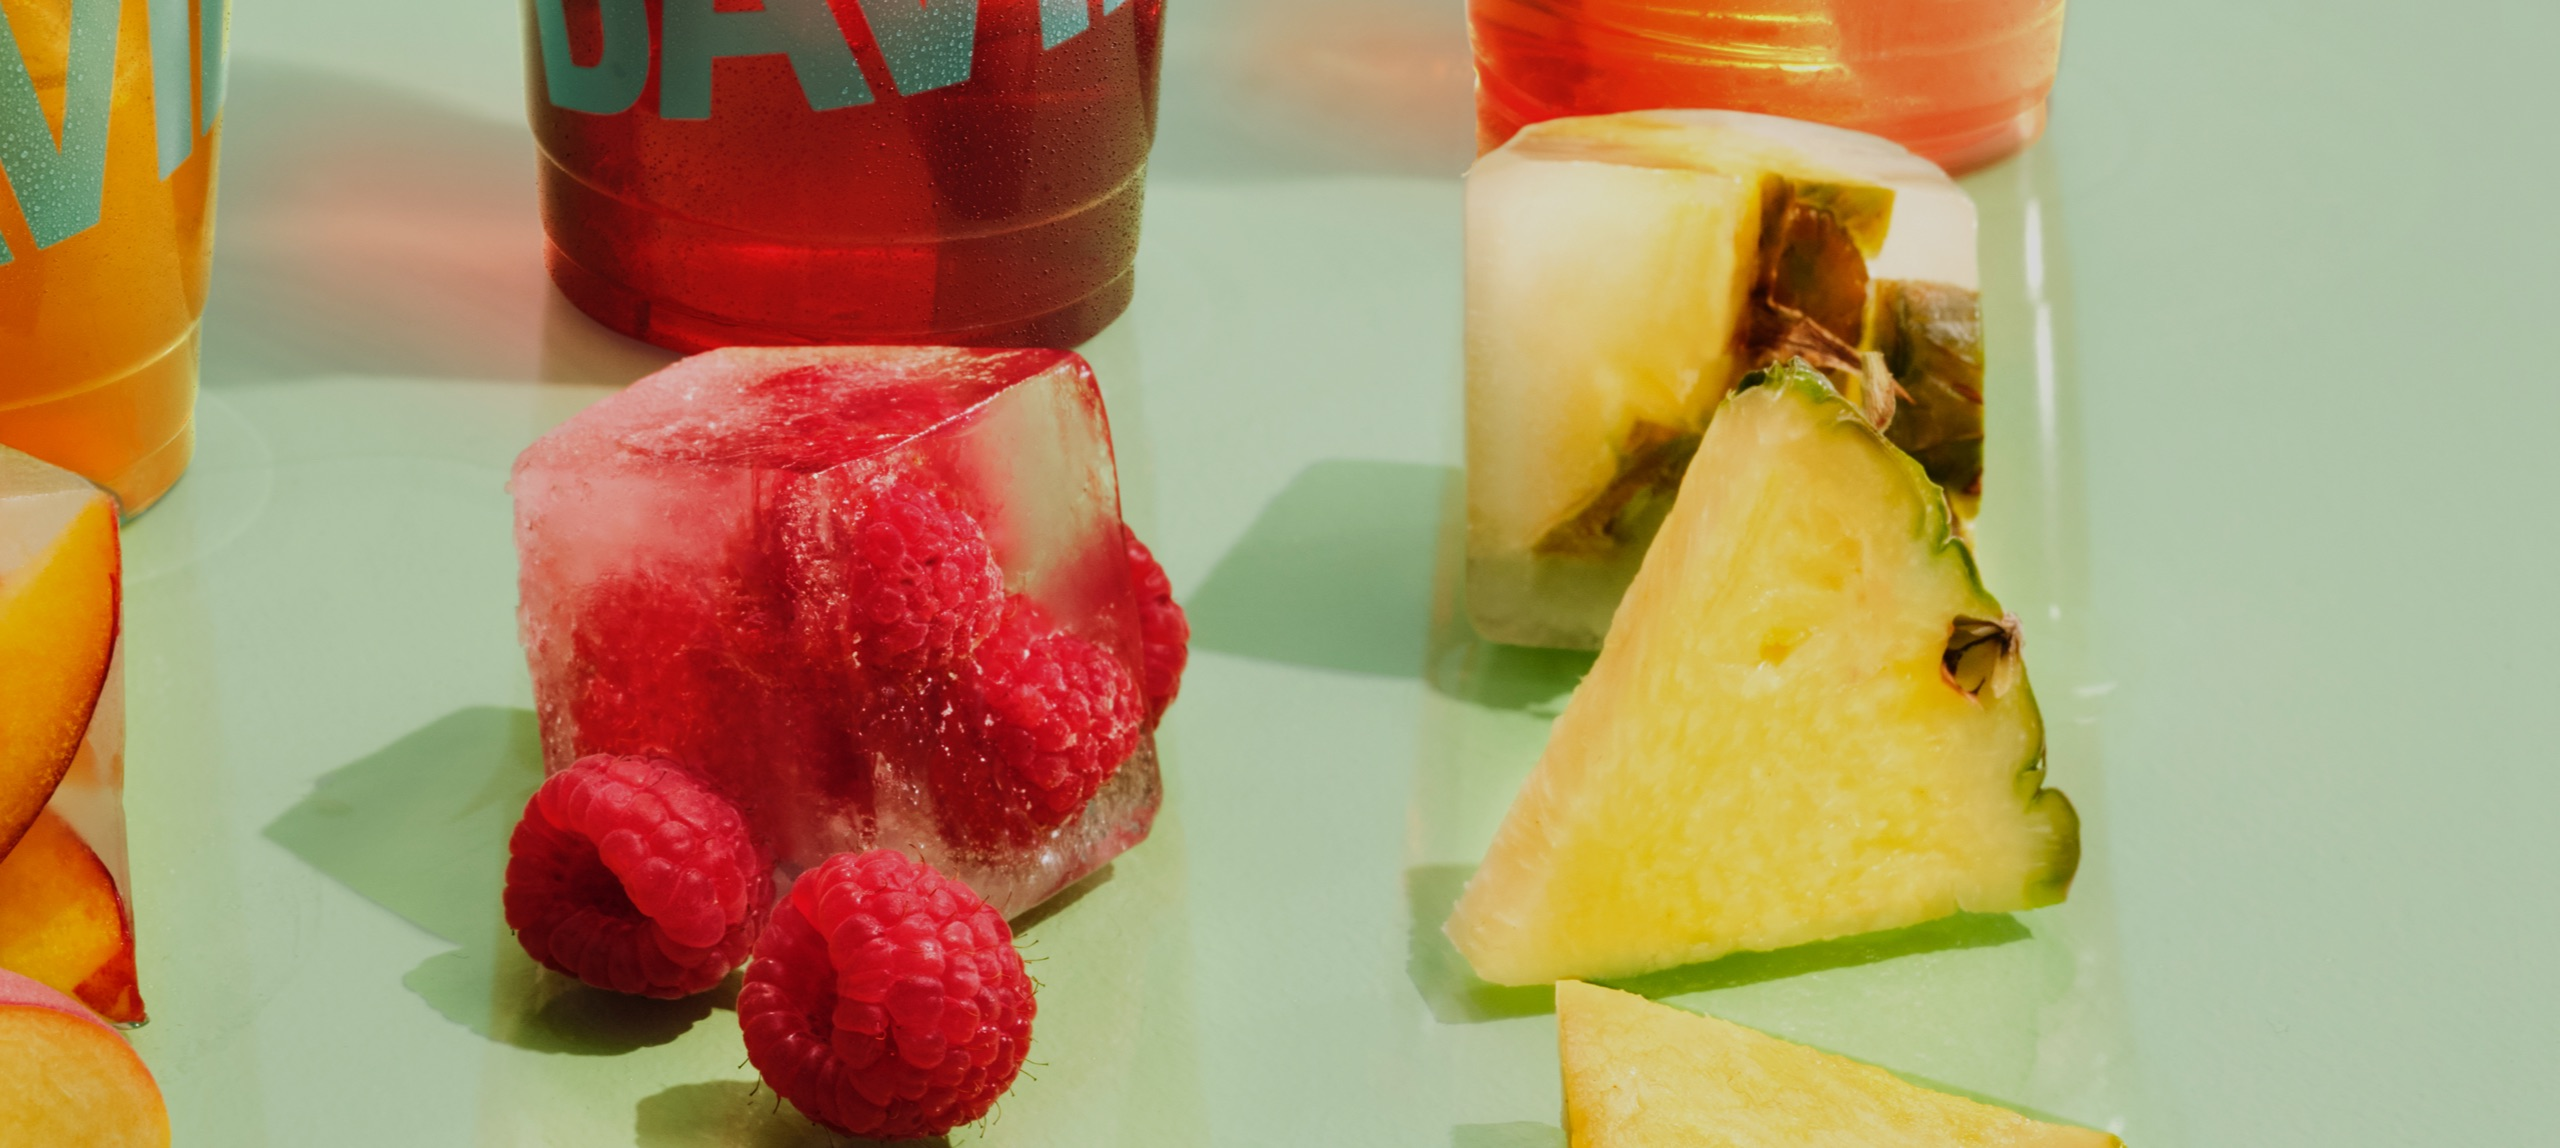 Three cups filled with iced teas with peach, raspberries and pineapples placed in front.